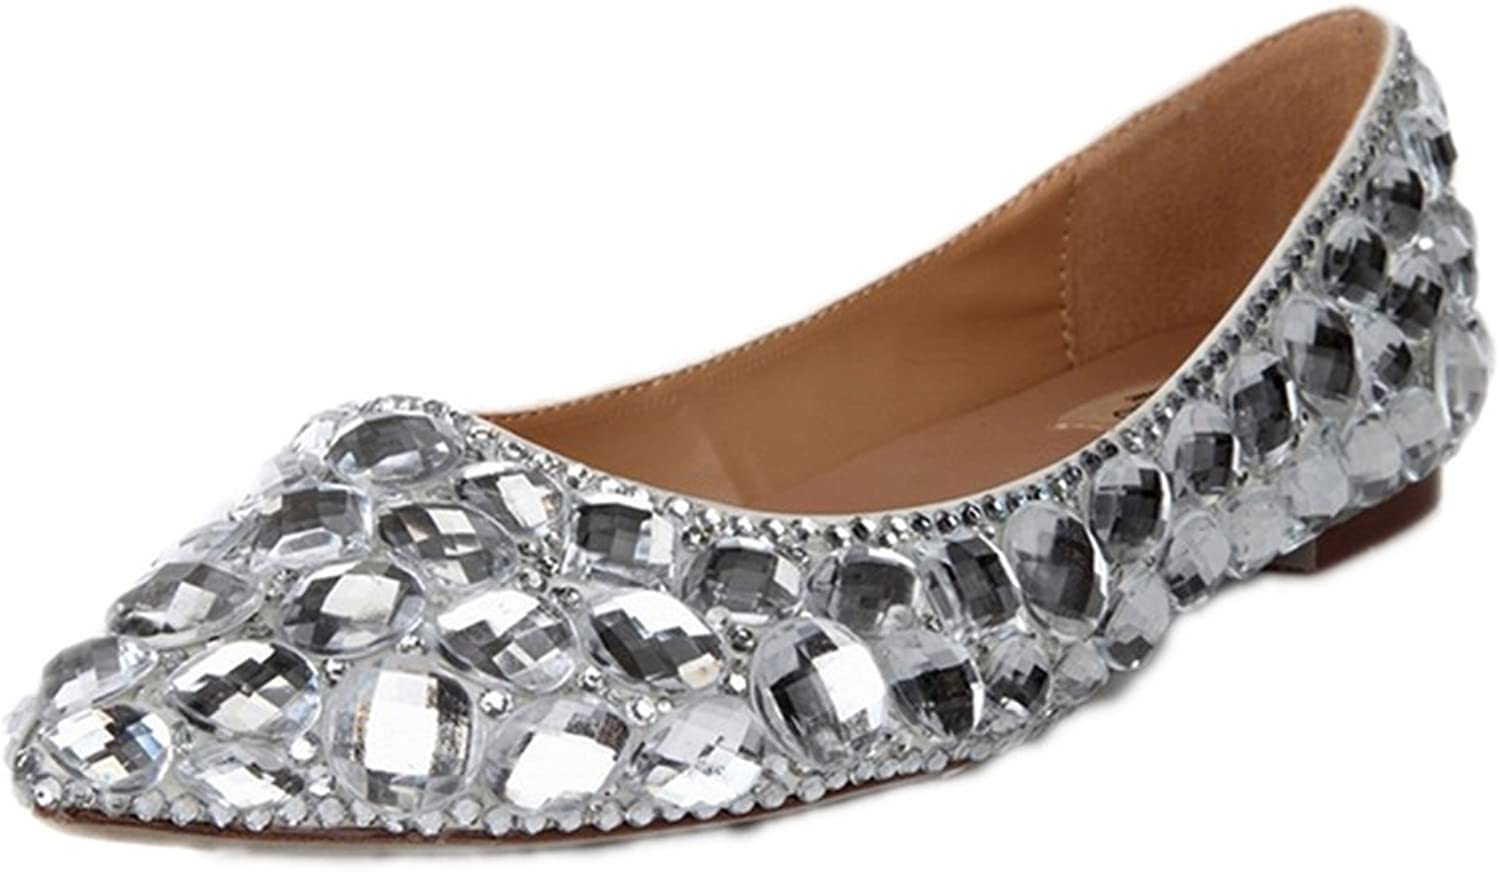 Lacitena Women's Diamond Pointed Flat shoes,Rhinestone Party Flats,Bride Wedding Party Flat shoes